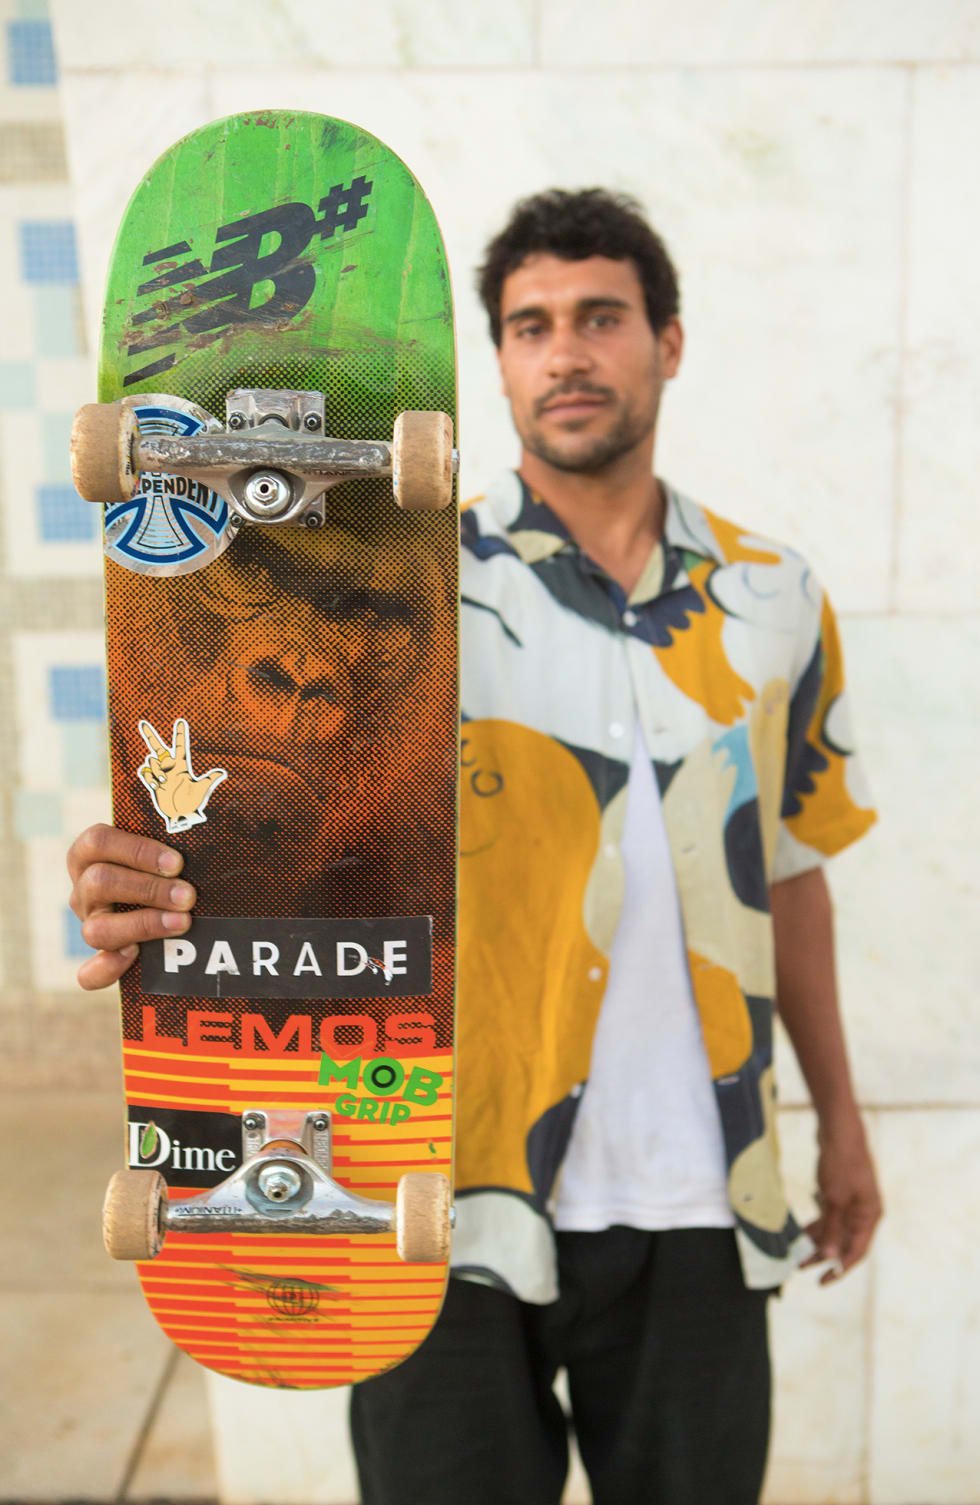 Tiago Lemos welcome to Parade World. Tiago sponsored by New Balance, Primitive, Mob grip, Independent Trucks, Dime Clothing